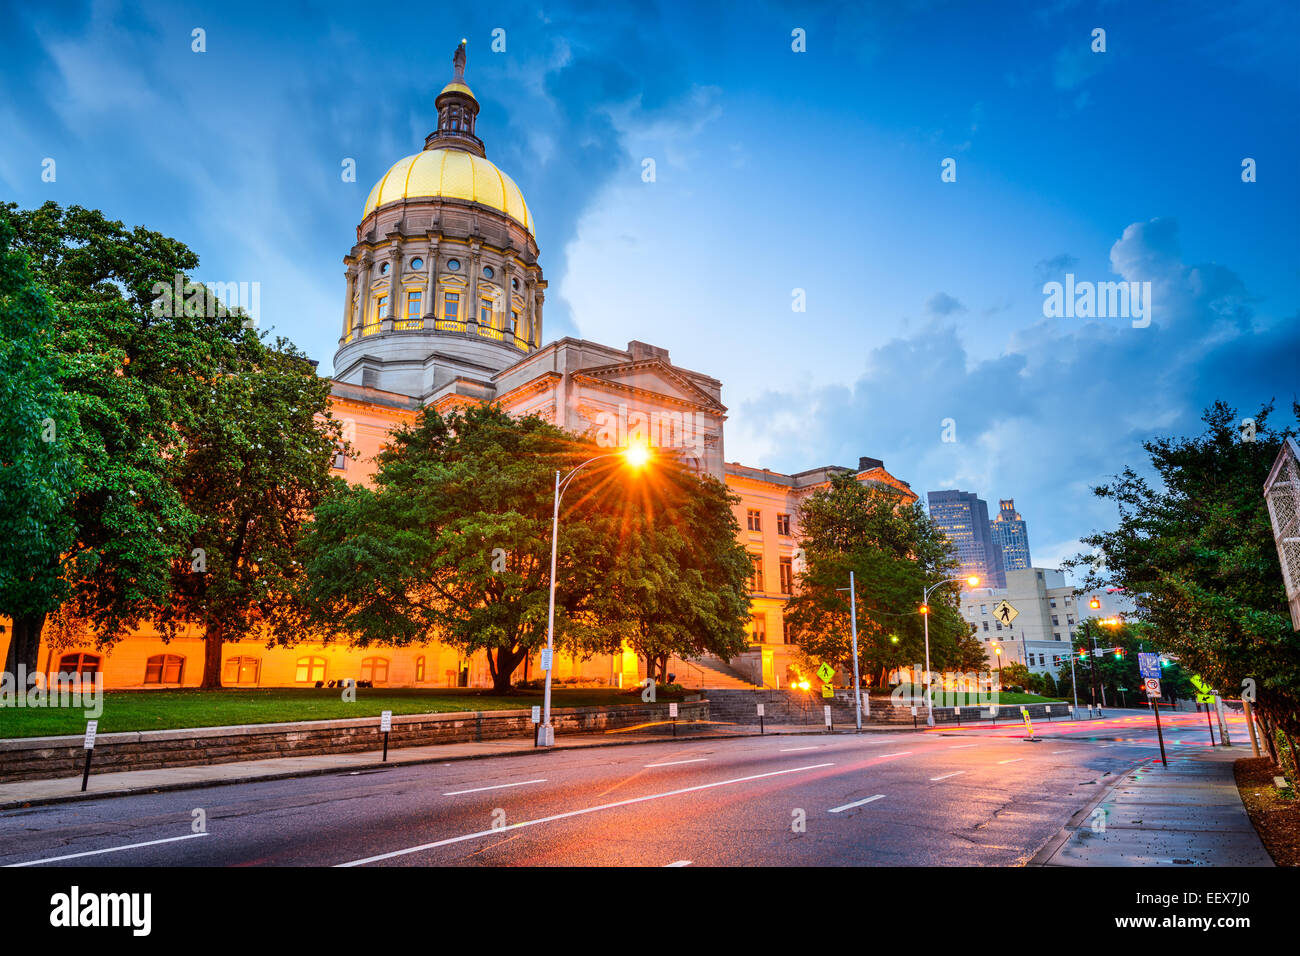 georgia state capitol building in atlanta georgia usa stock photo 78023400 alamy. Black Bedroom Furniture Sets. Home Design Ideas